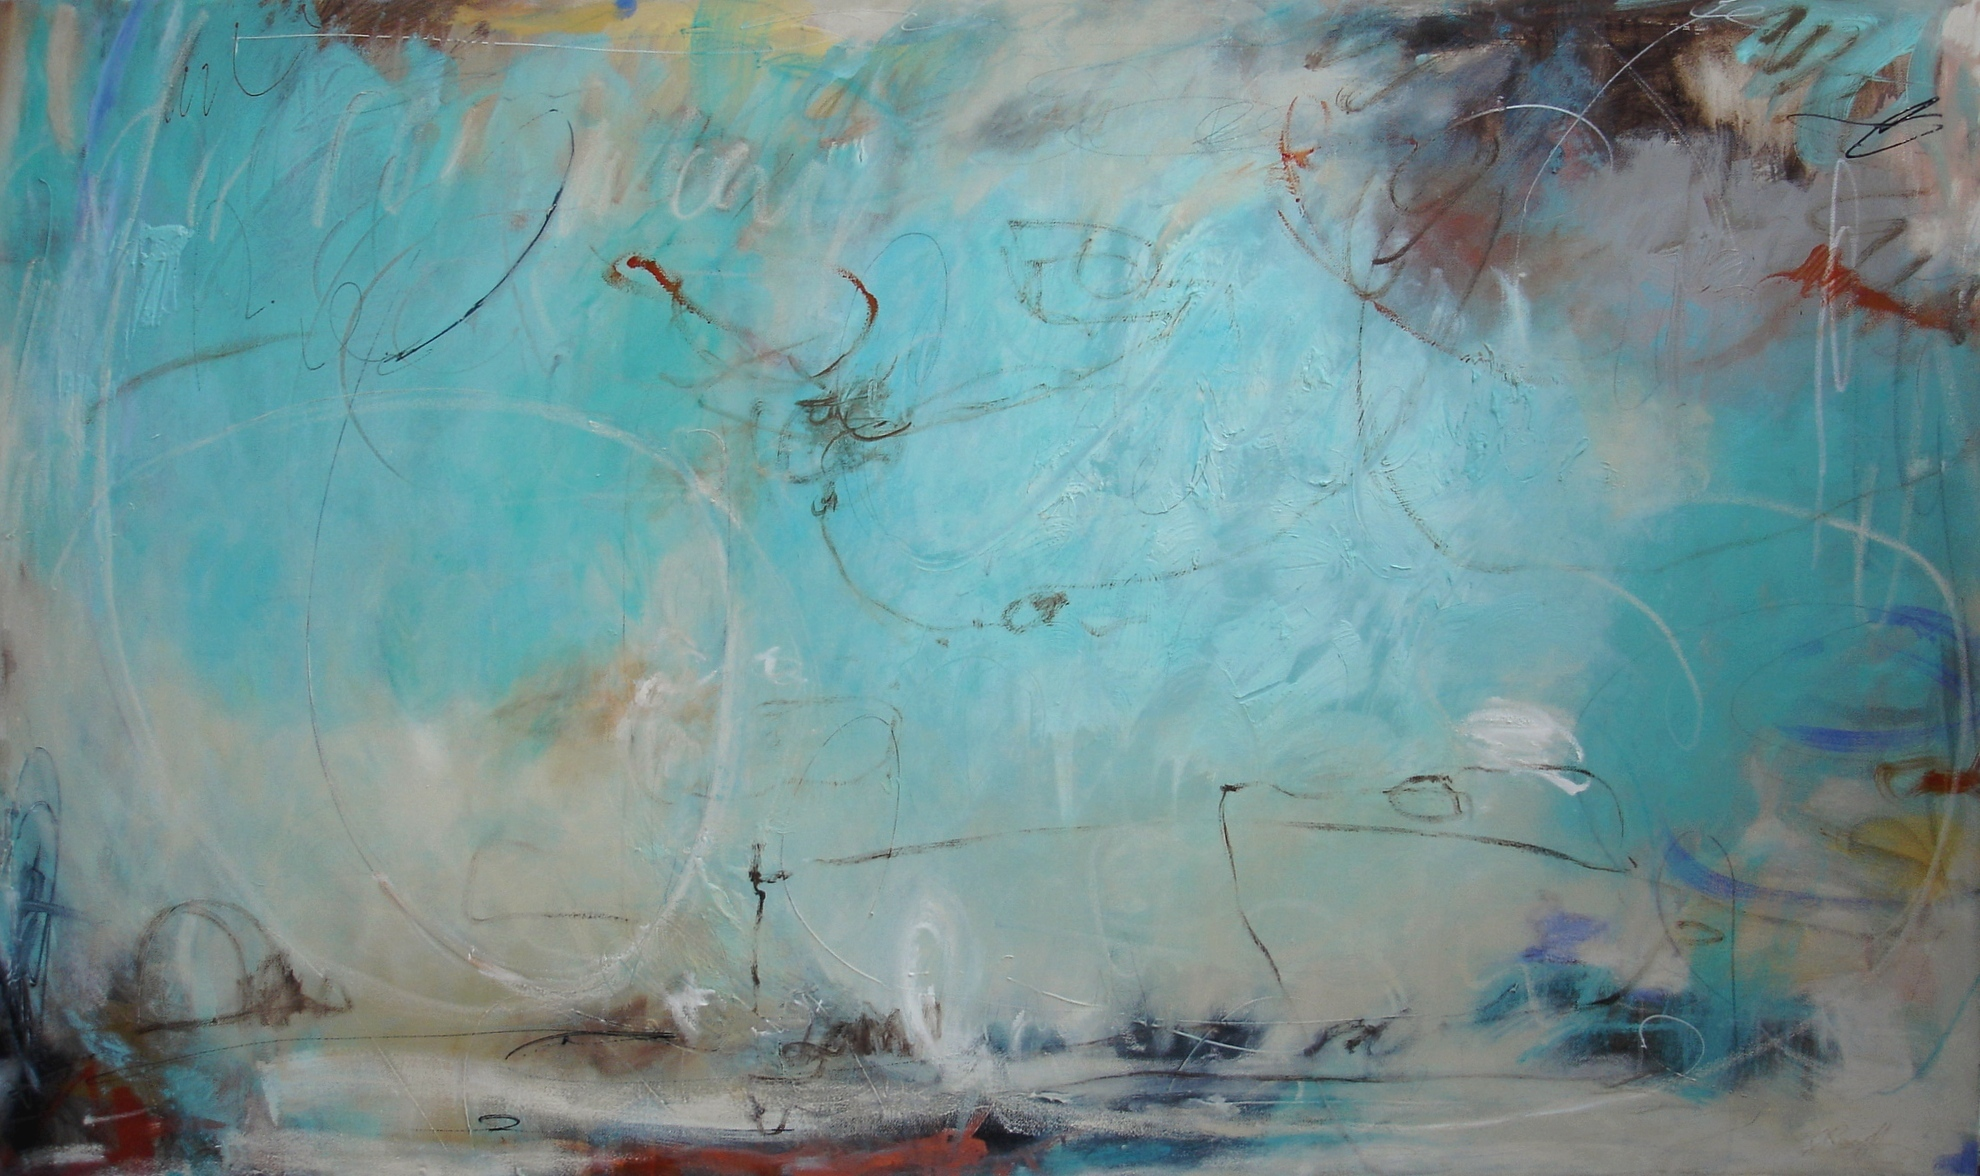 Connections, 92 x 153cm